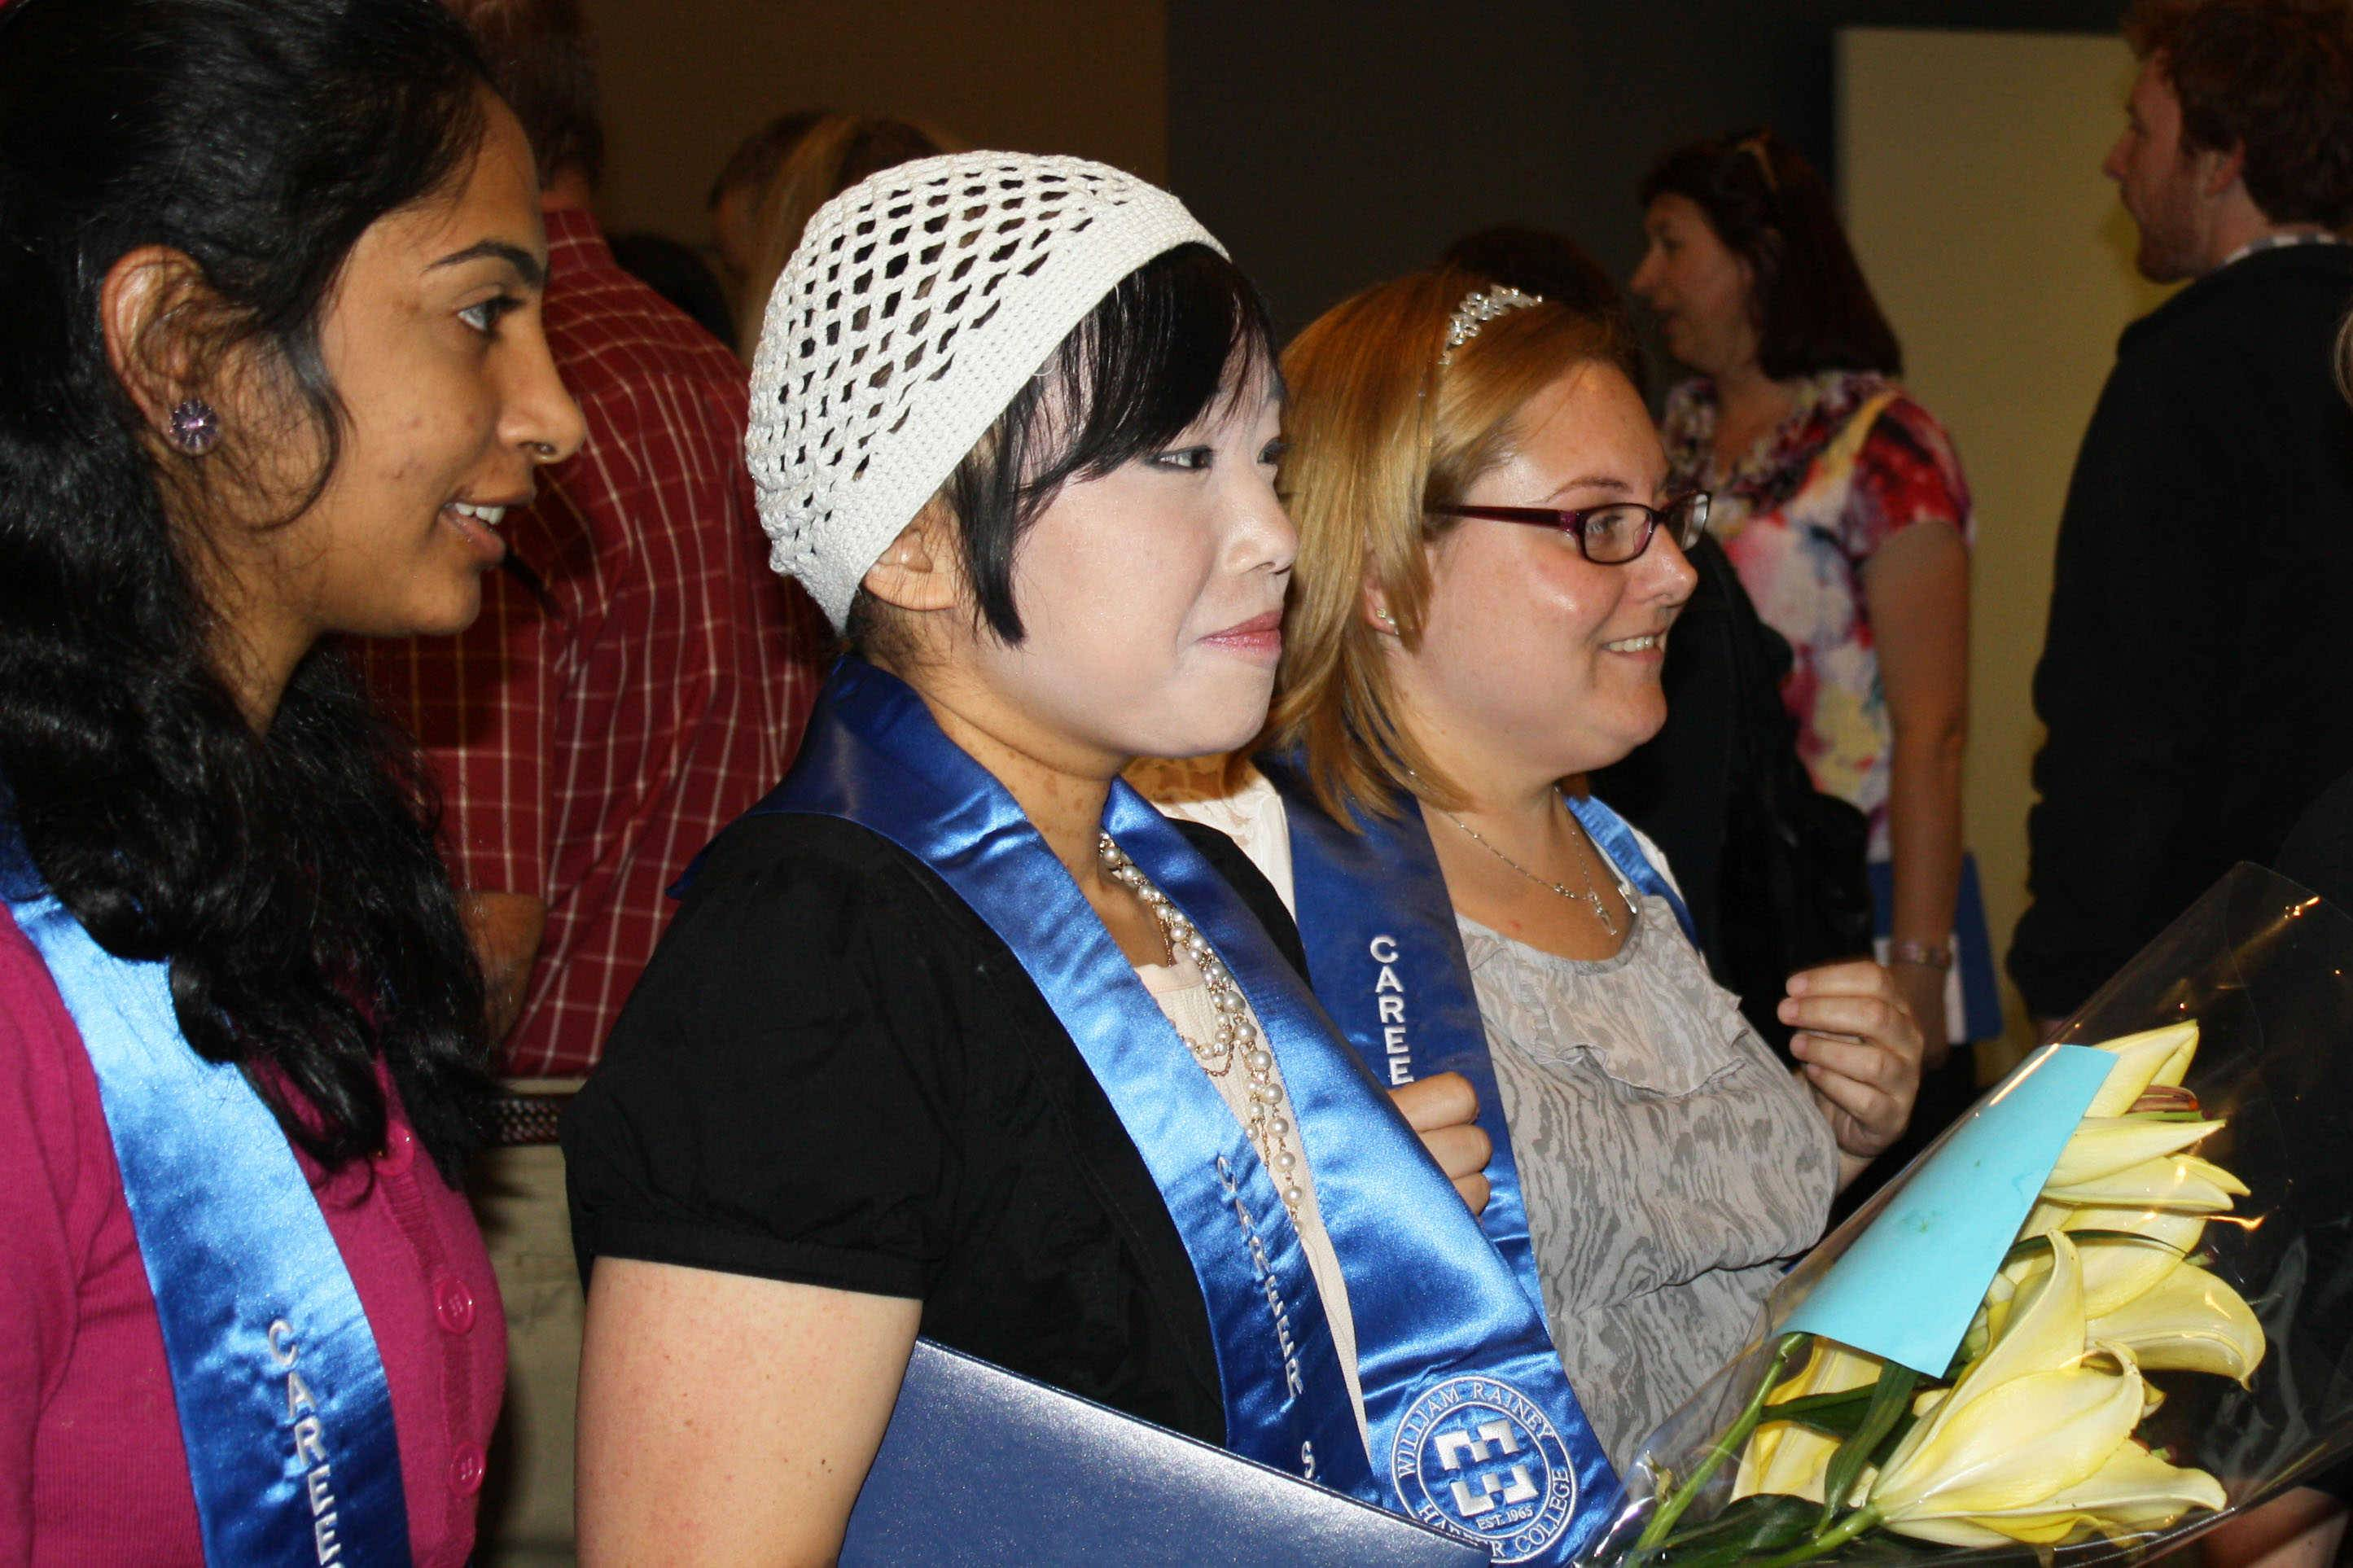 Nikhita Devulapally of Roselle, Yumi Ishikawa of Northbrook and Amy Thiede of Elk Grove Village listen to the speakers during the graduation ceremony.